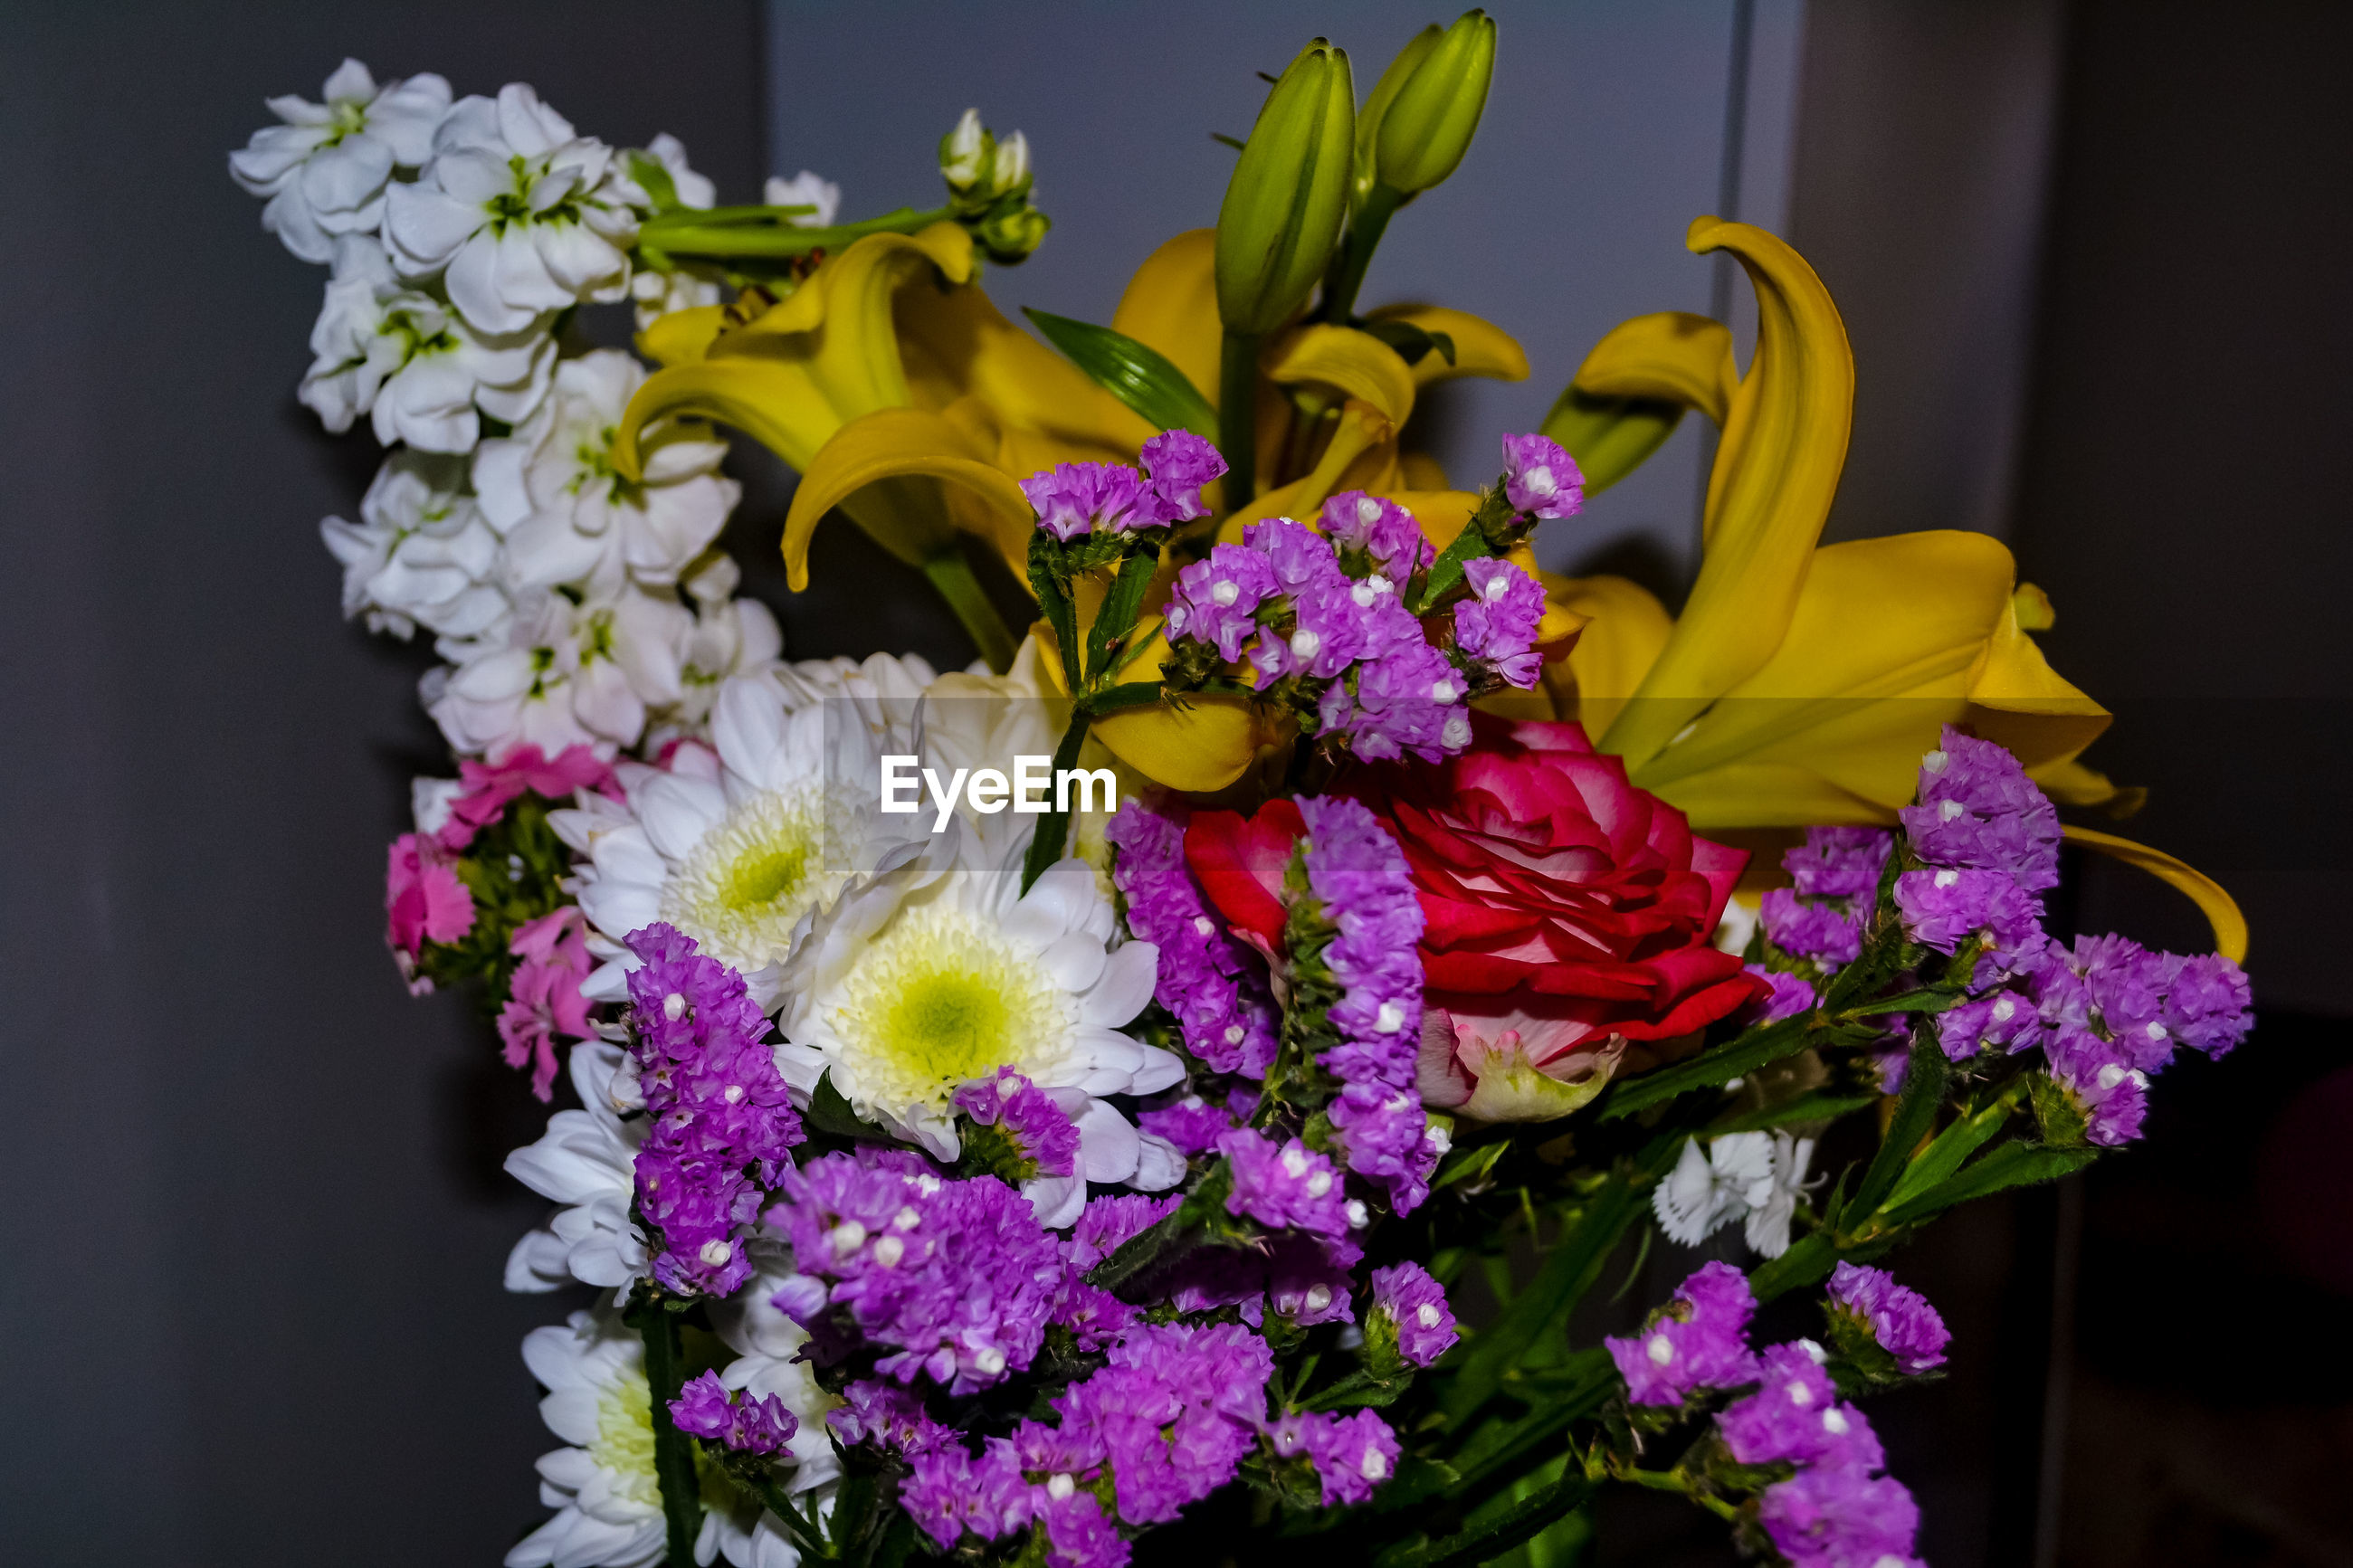 CLOSE-UP OF BOUQUET OF PURPLE FLOWER